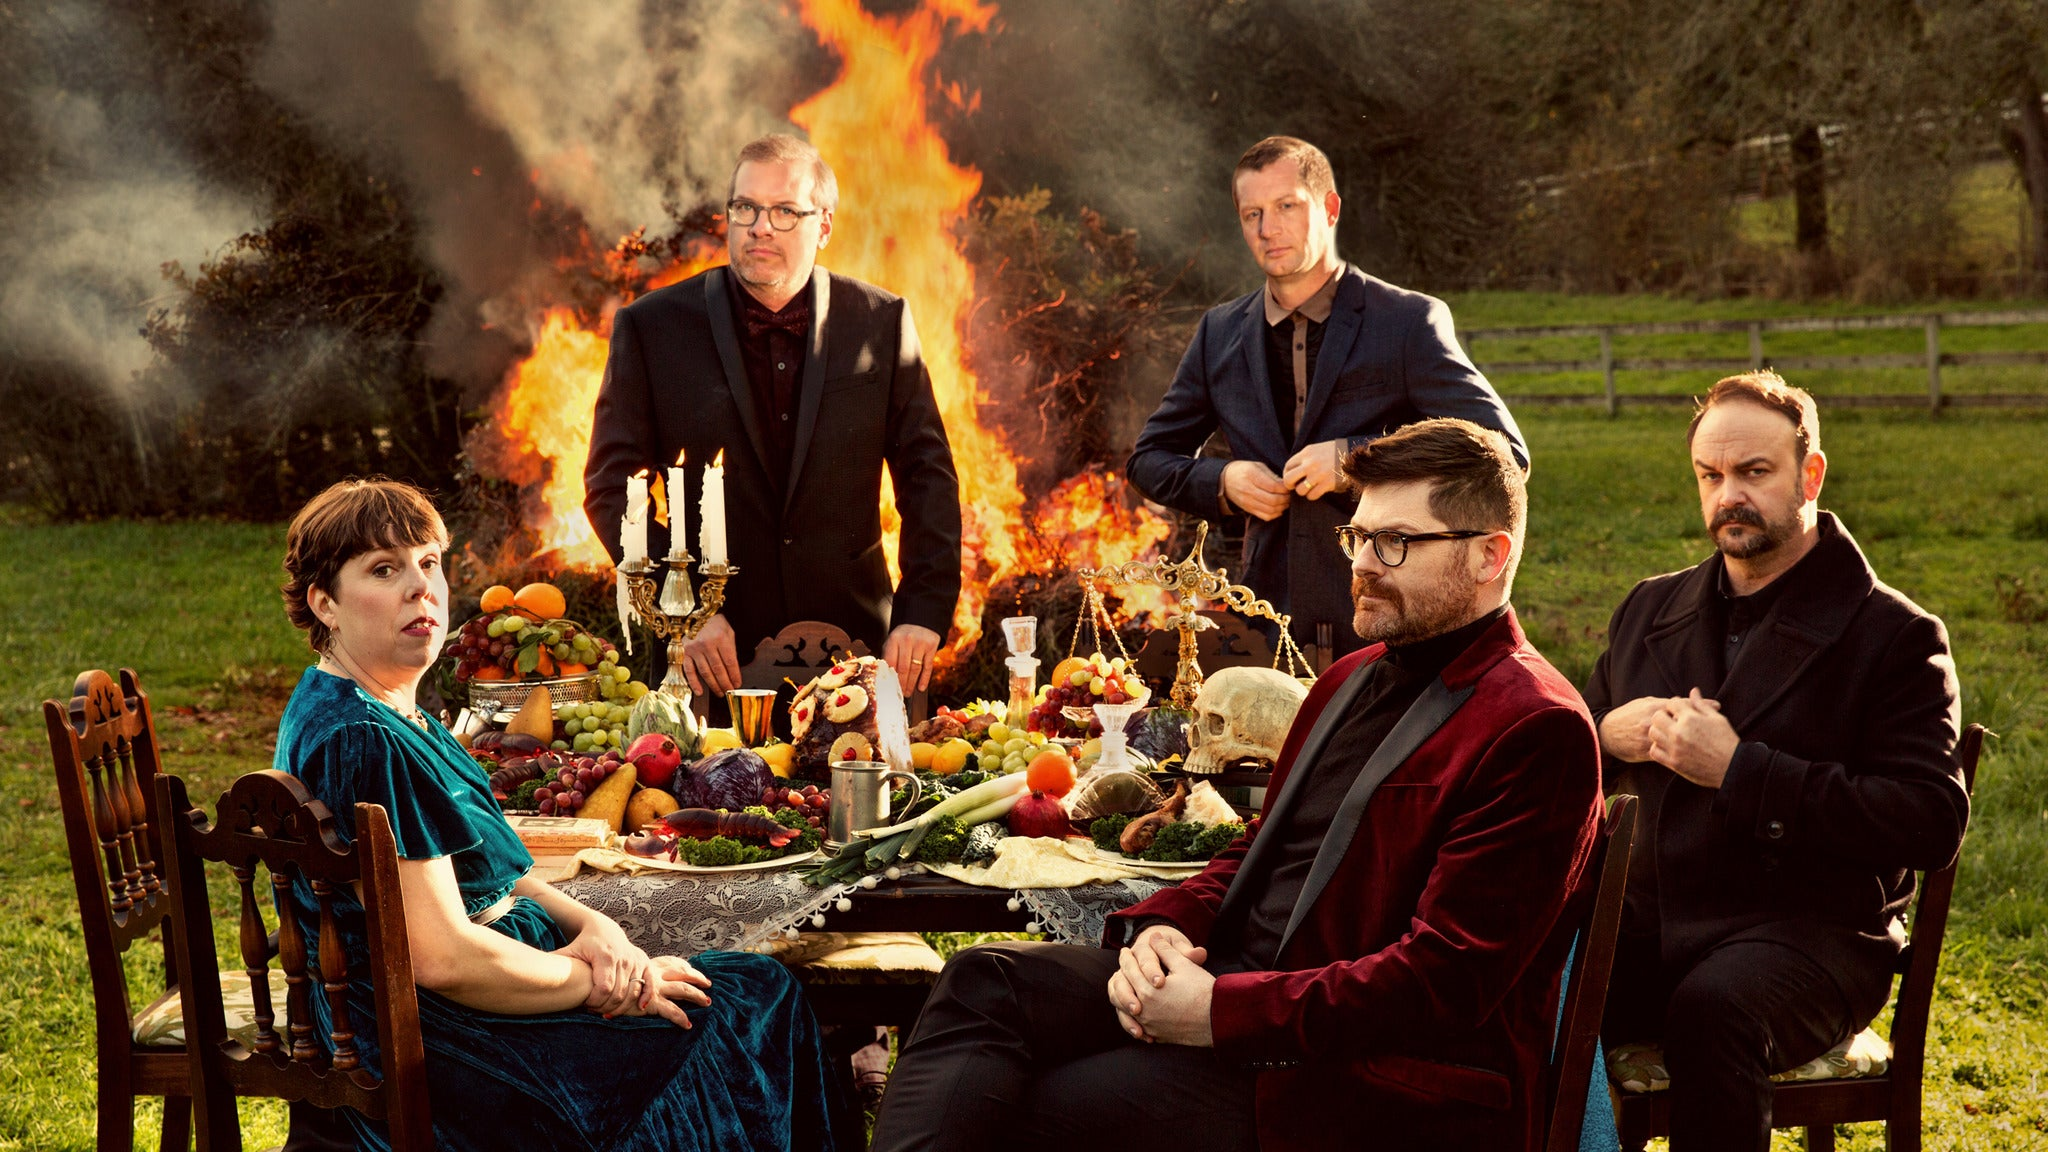 The Decemberists at The Fox Theater-Pomona